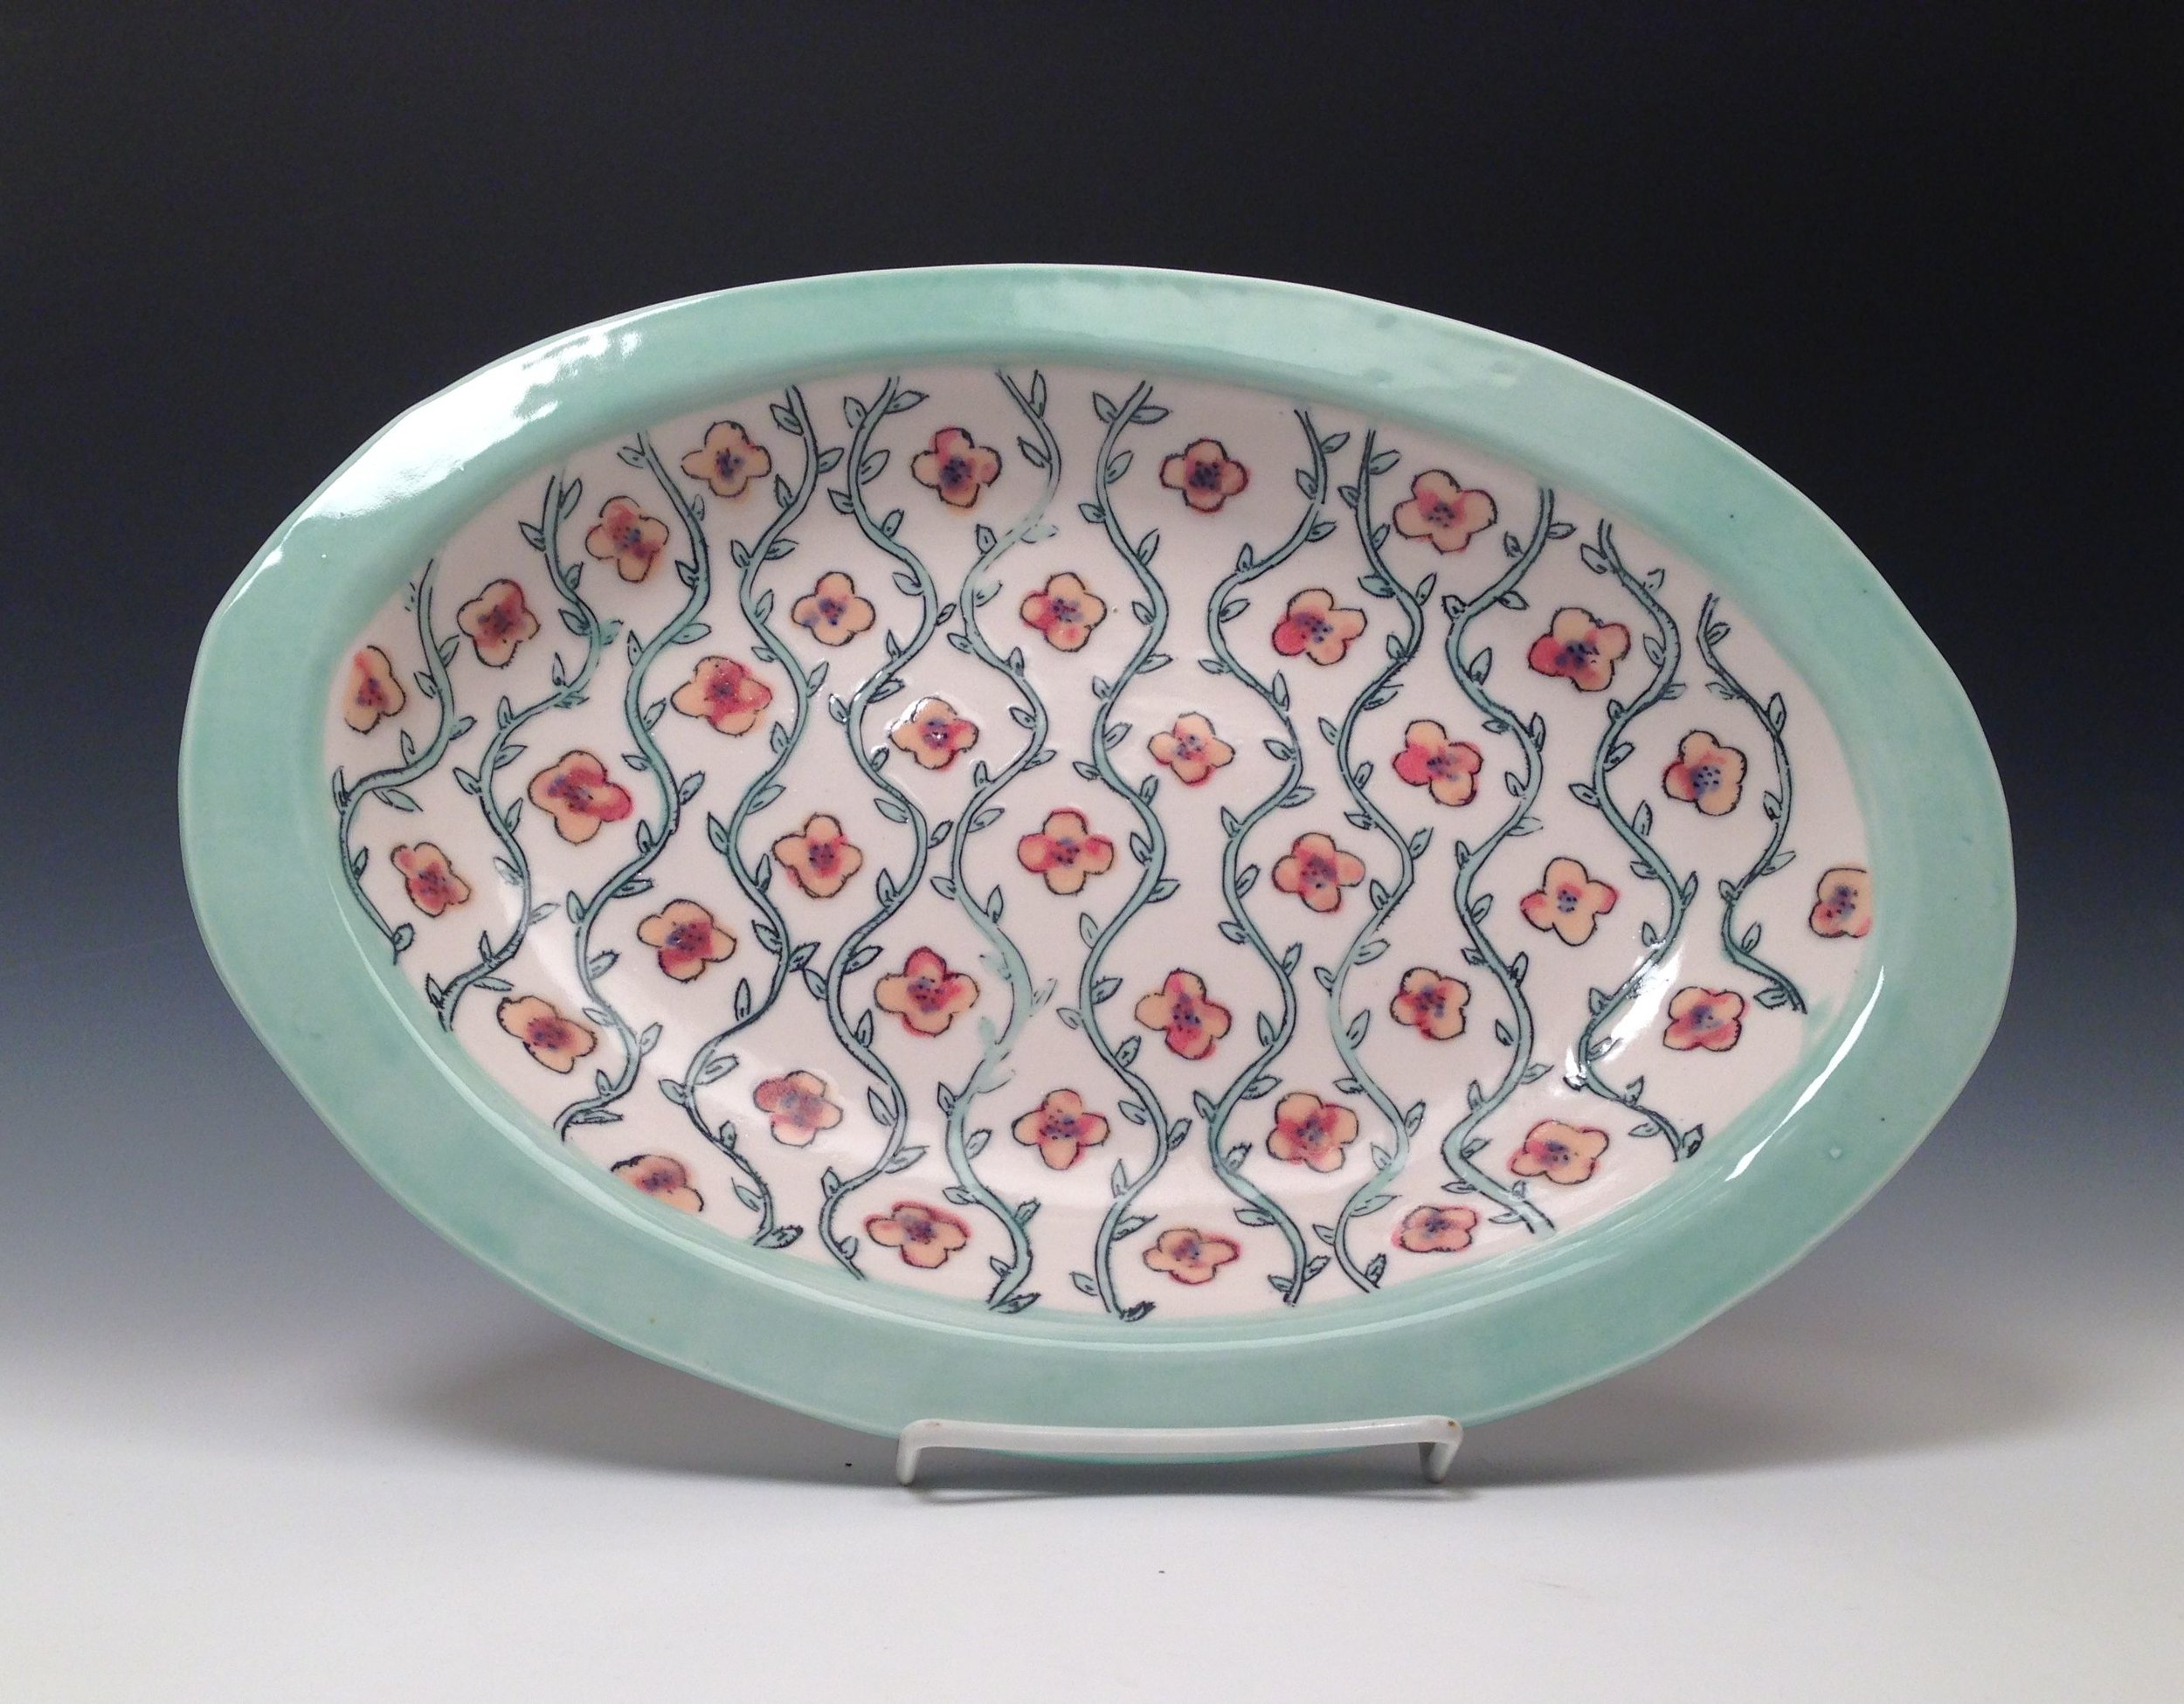 Josie Jurczenia  Bloom-Wallpaper Platter , 2014 cone 6 porcelain 15 x 10.5""